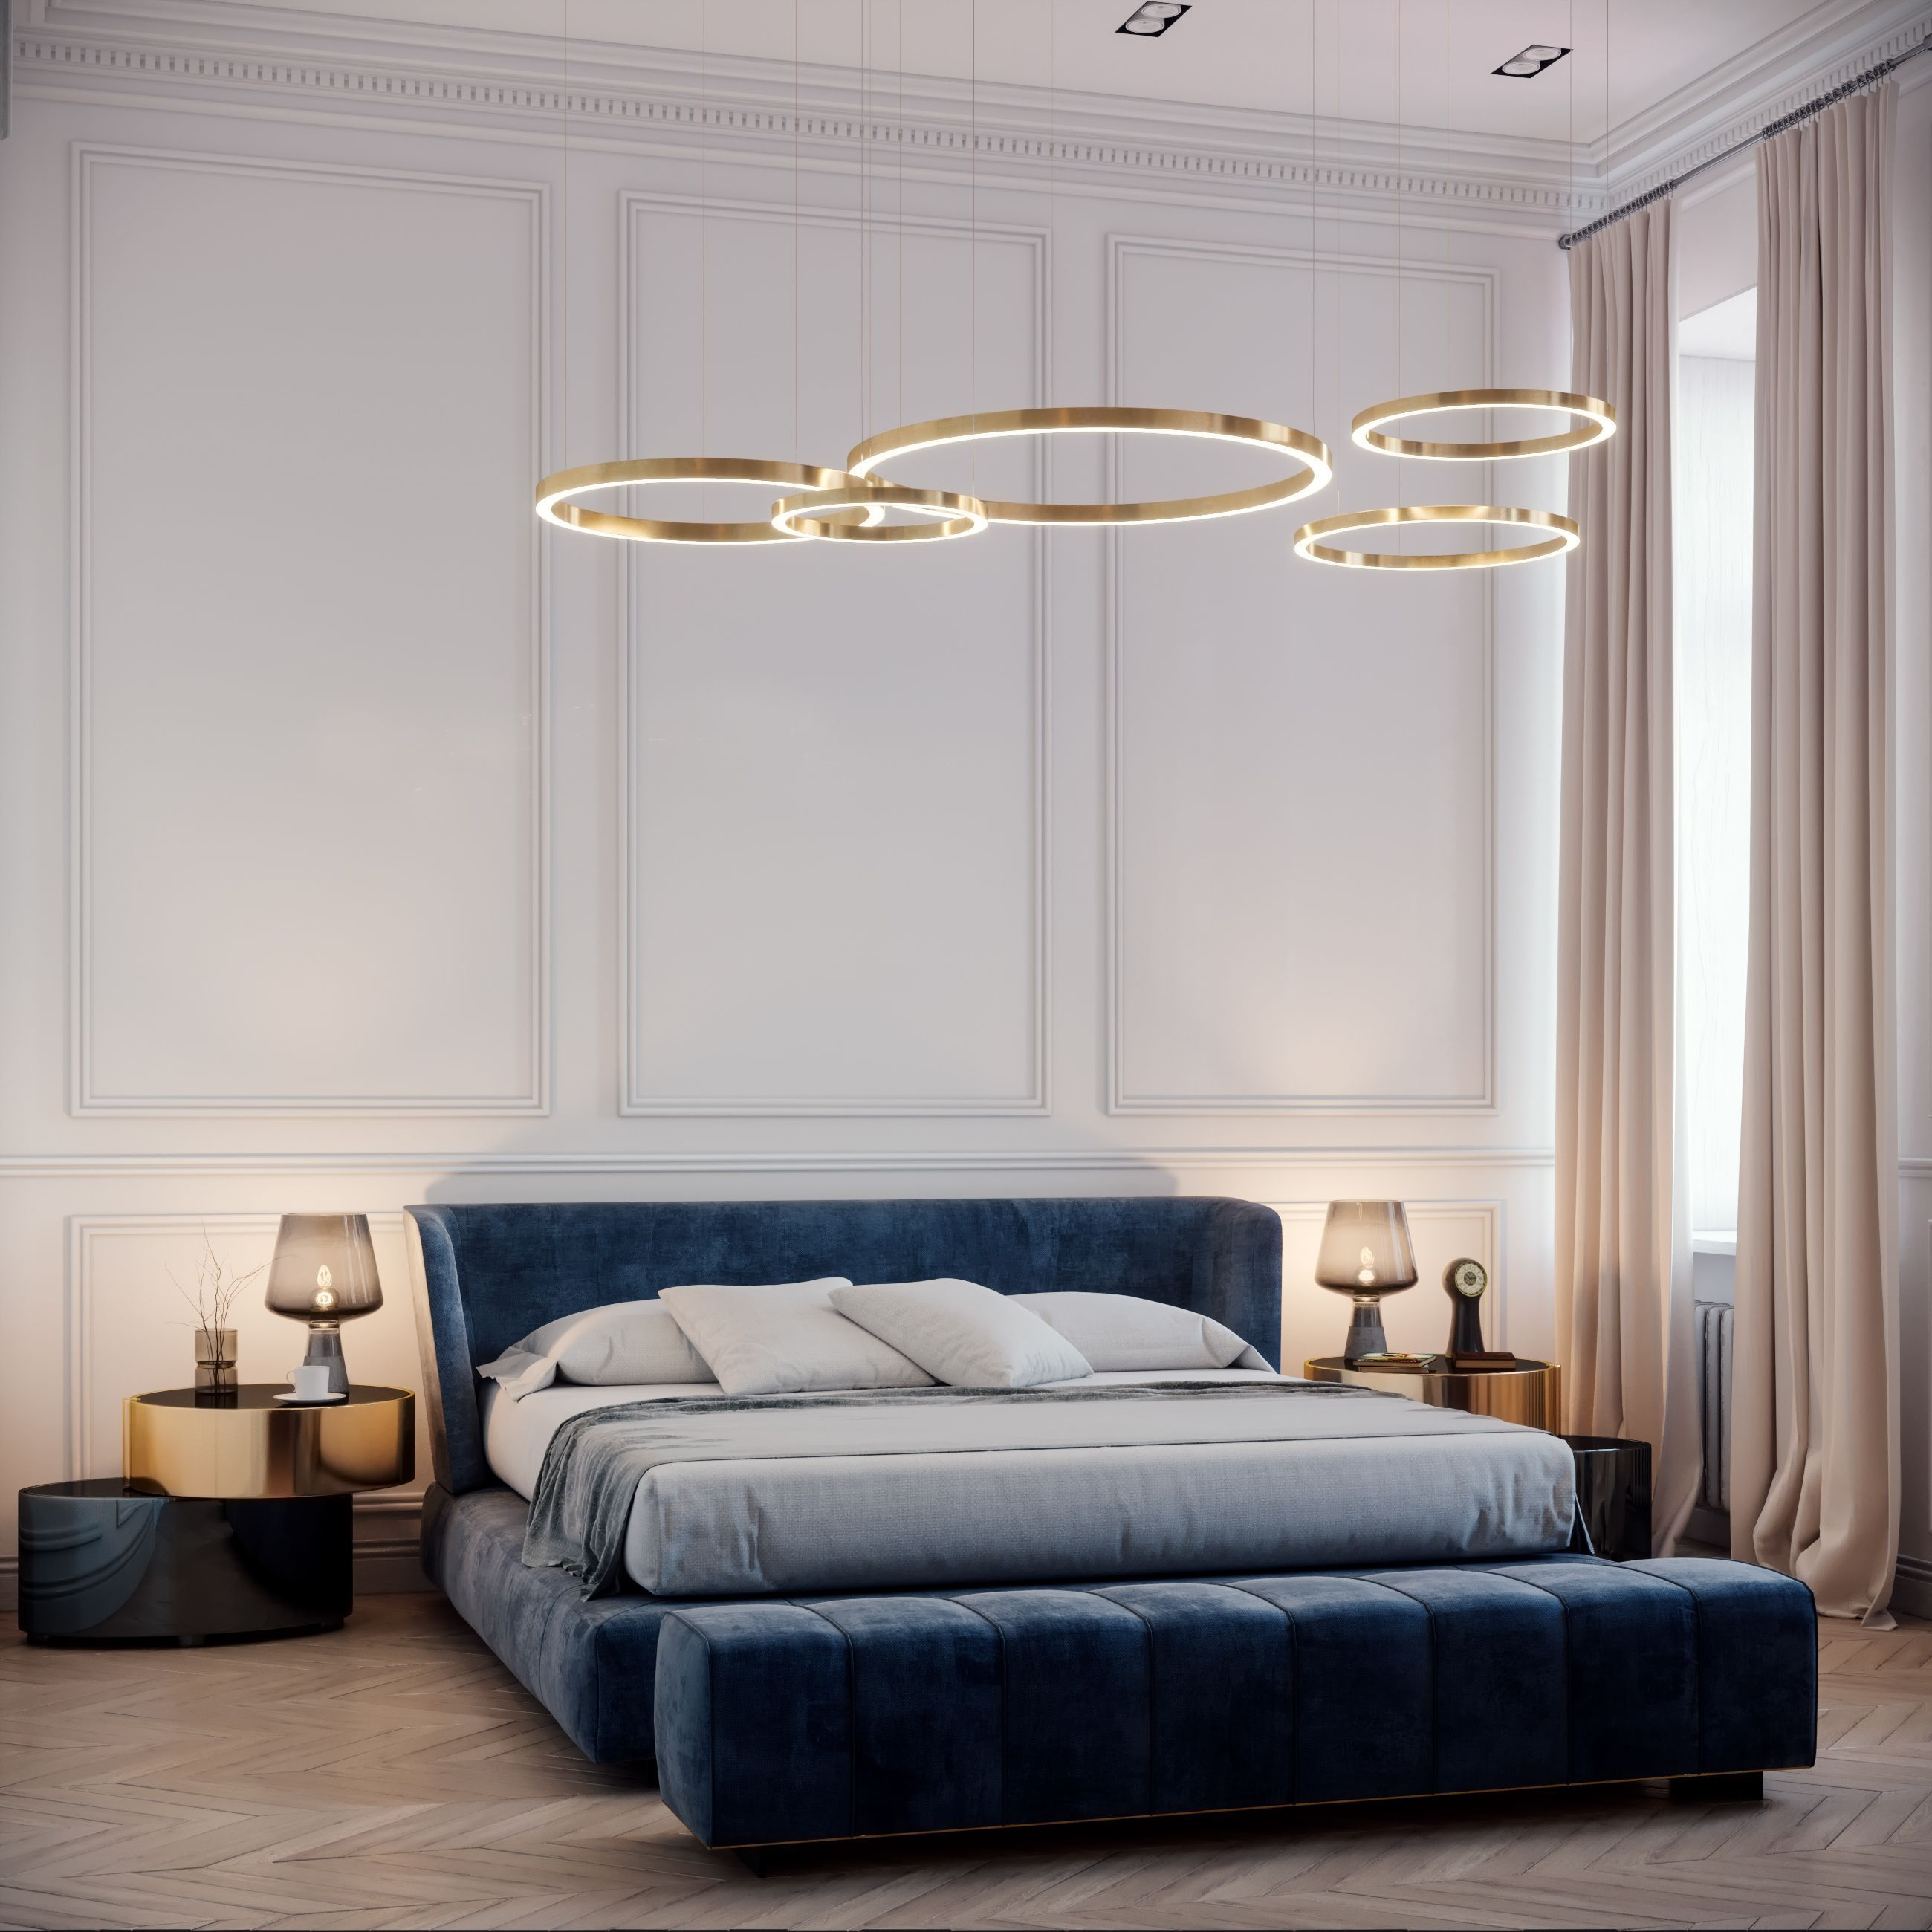 Find Here Luxxu S Bedroom Lighting Inspirations Selection To Inspire Your Next Home Decor Project Check More Modern Luxury Pie Small Room Bedroom Luxurious Bedrooms Bedroom Decor